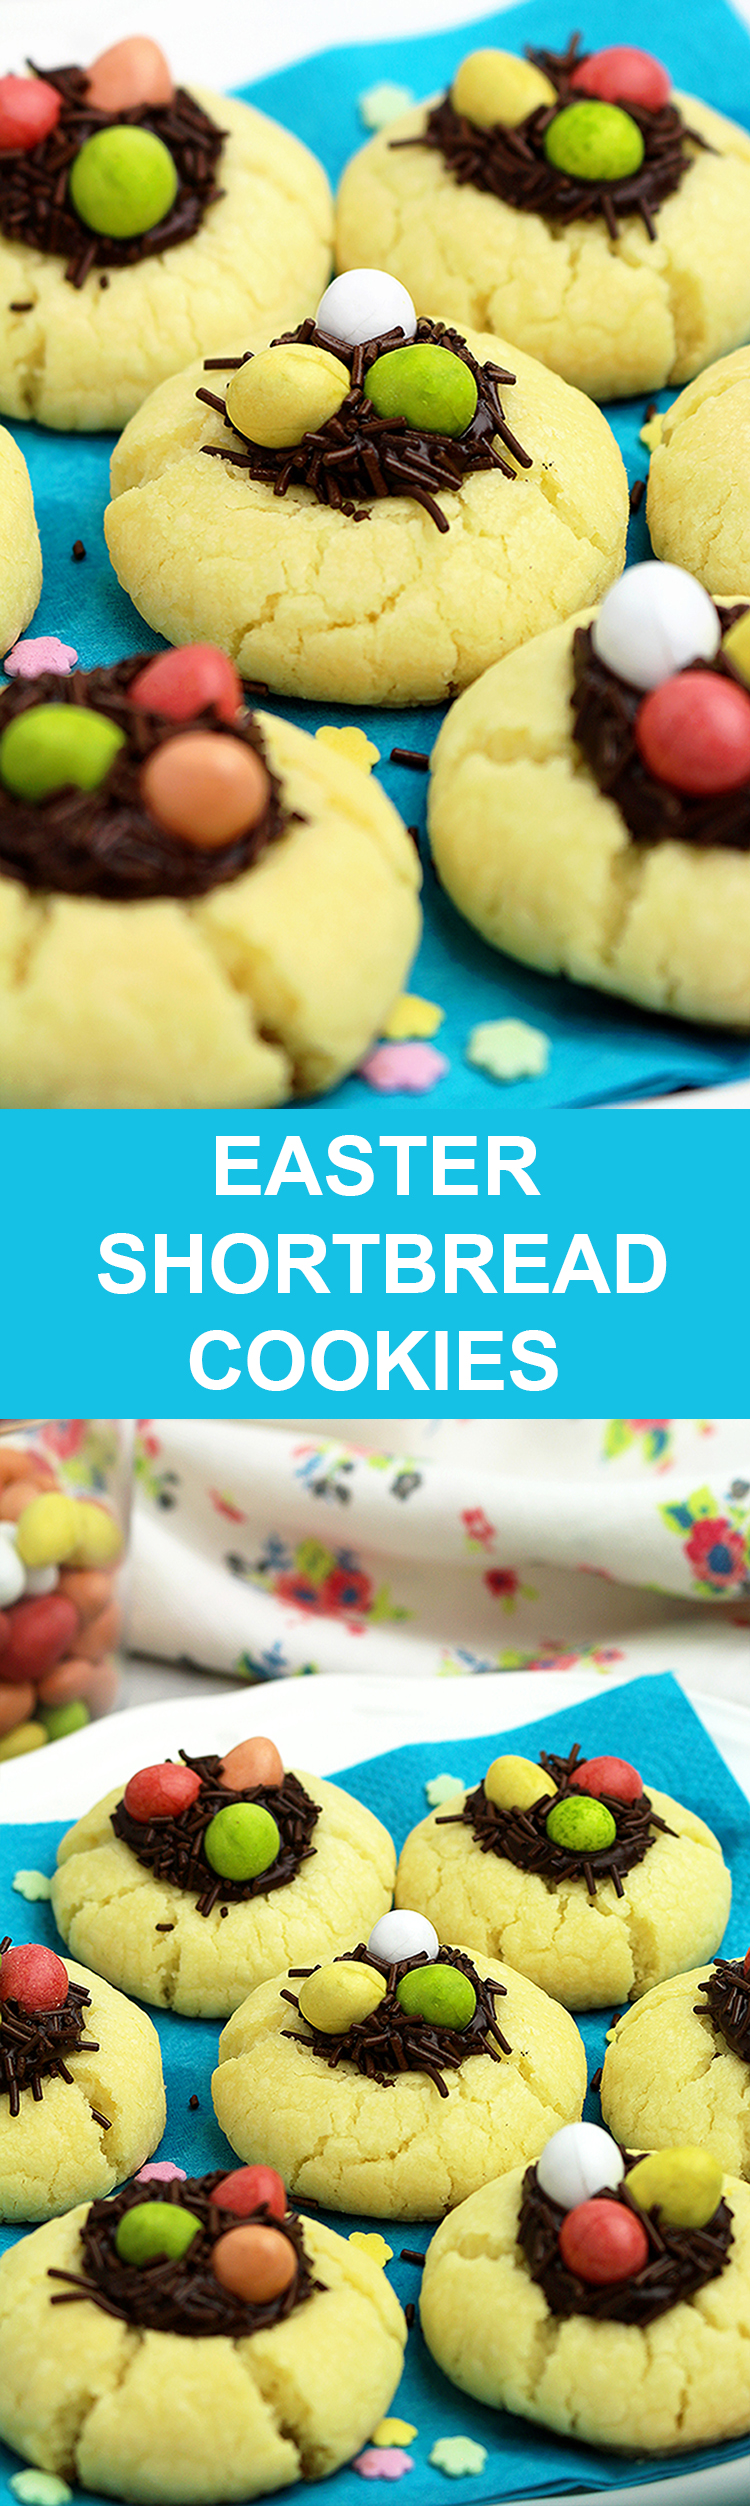 Easter Shortbread Cookies Untitled-141